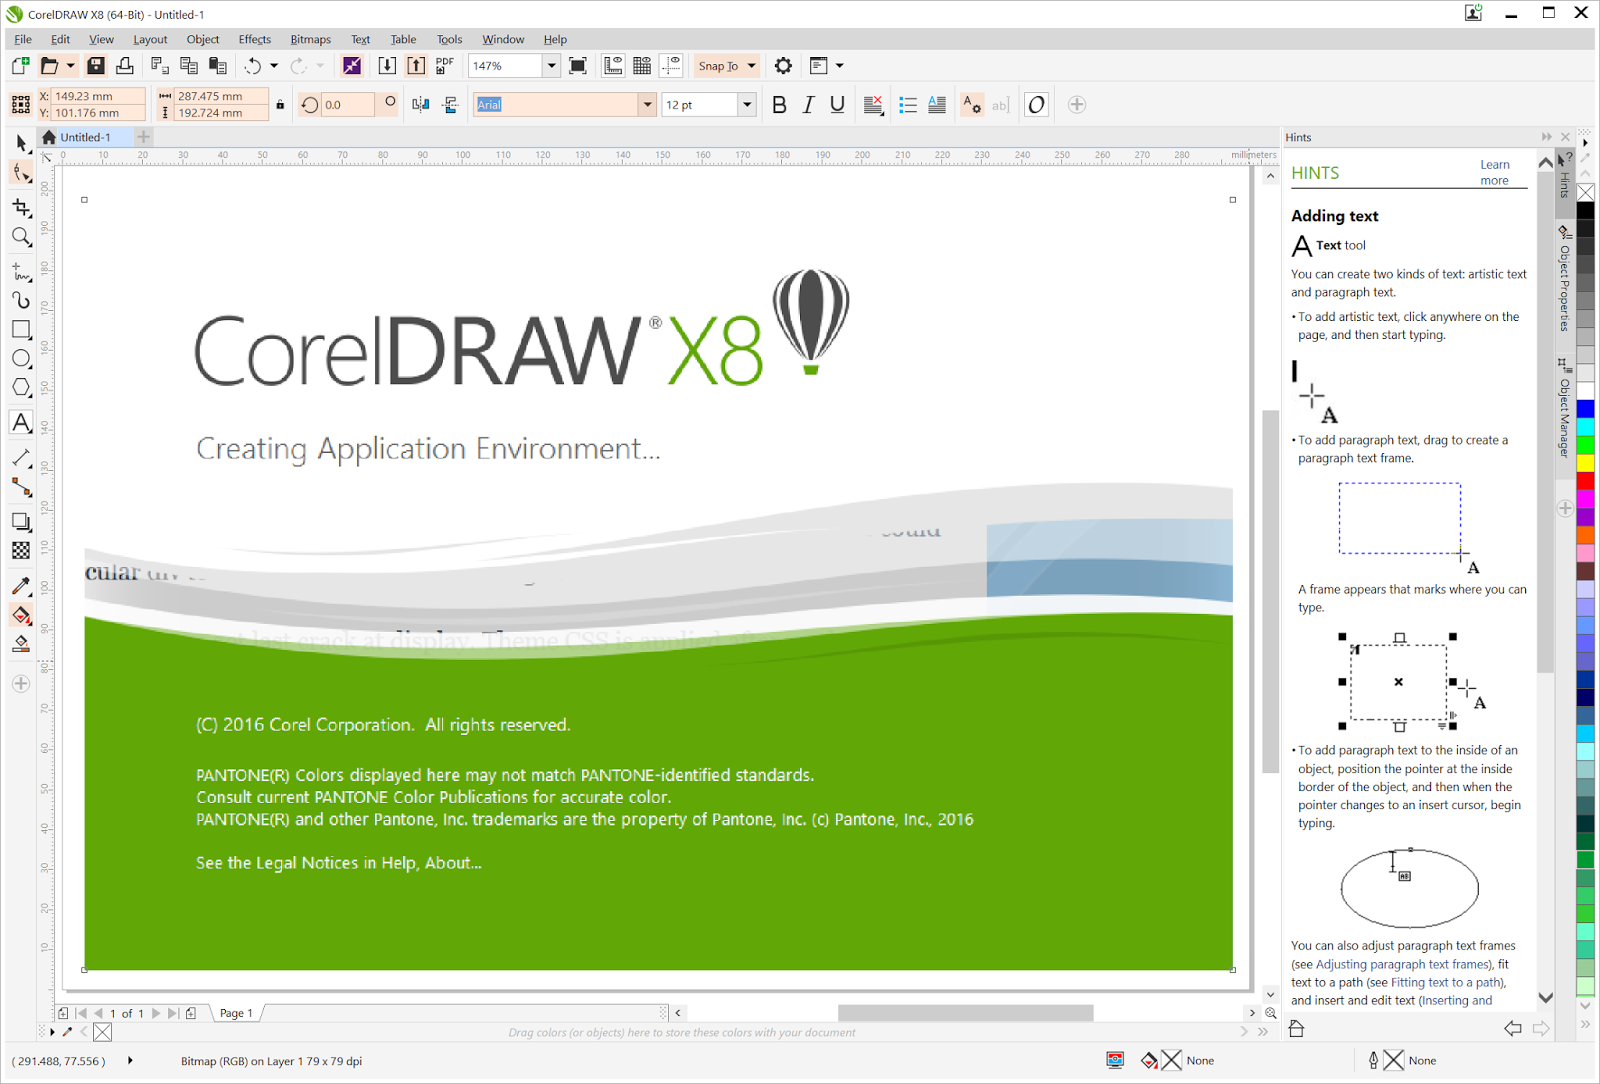 coreldraw windows 10 64 bit full crack